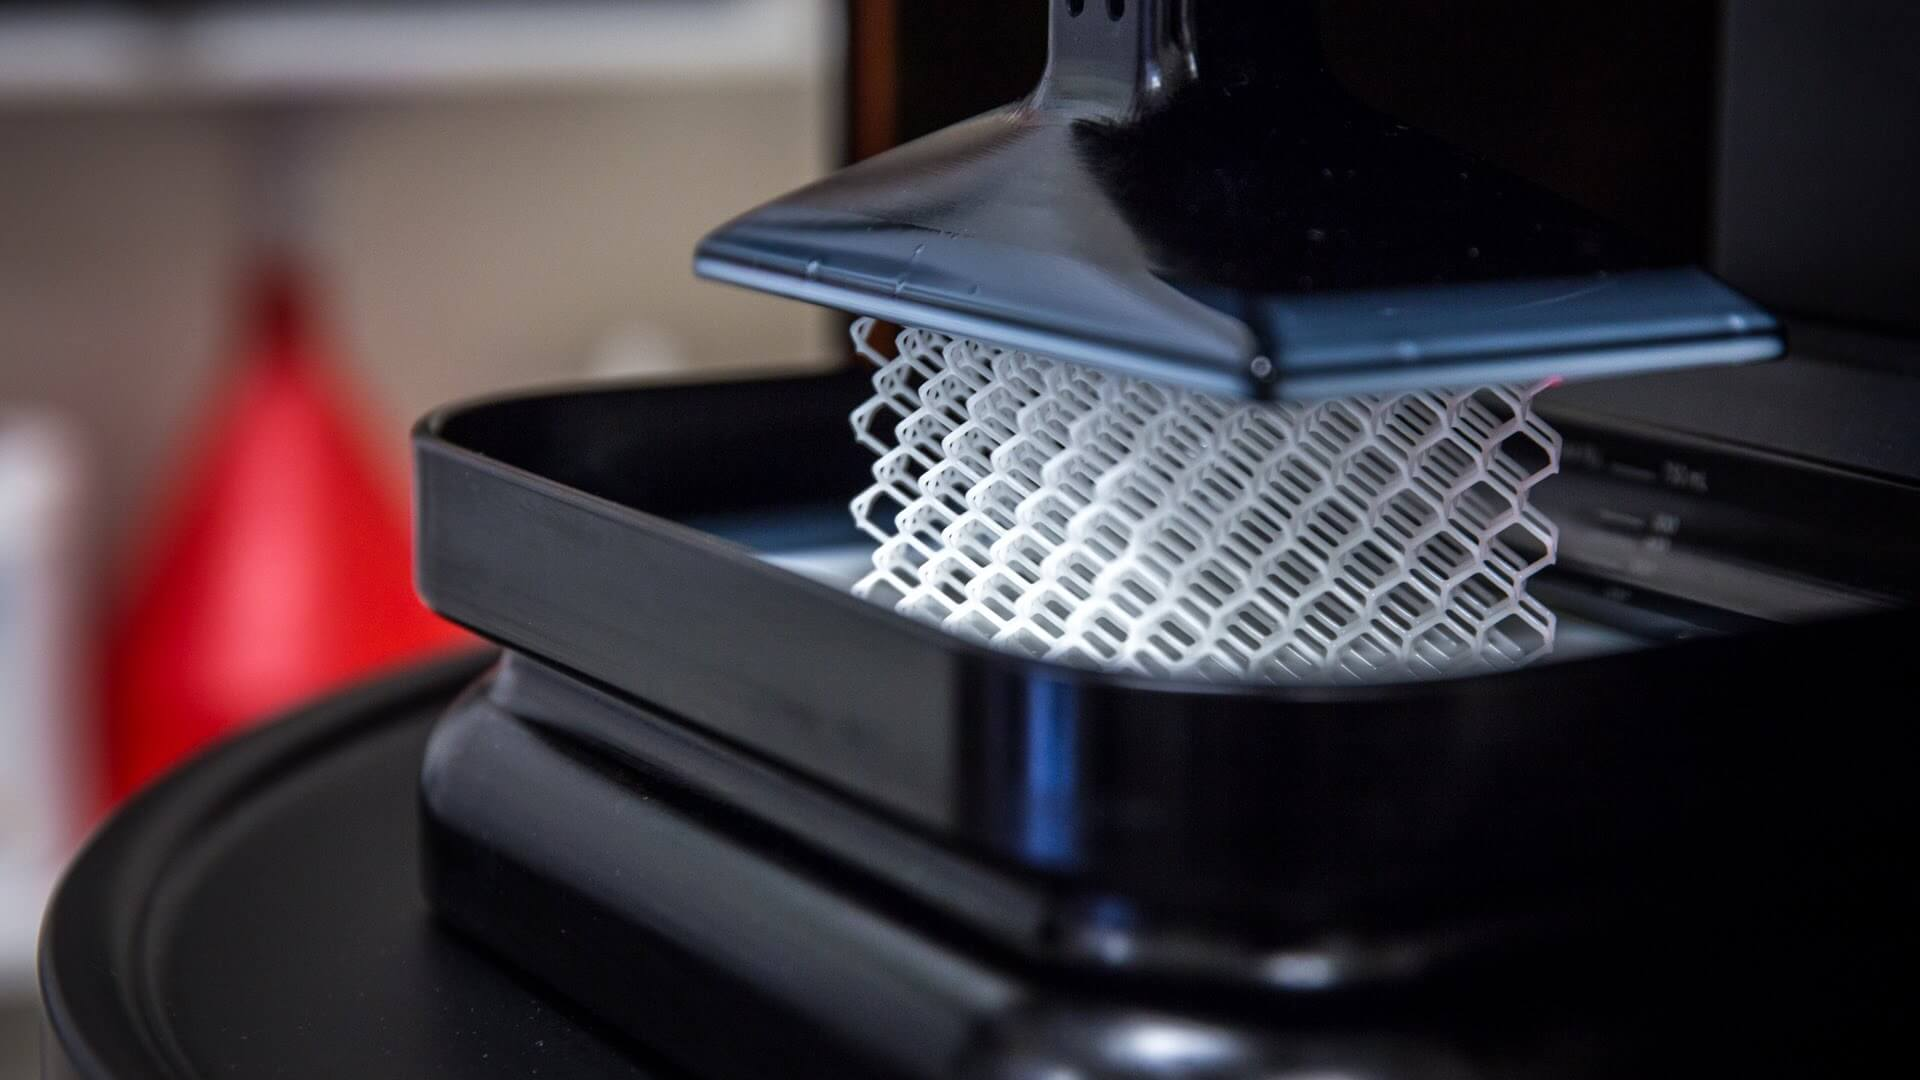 Things You Didnt Know About D Printing CuriousPost - 5 facts didnt know 3d printers yet